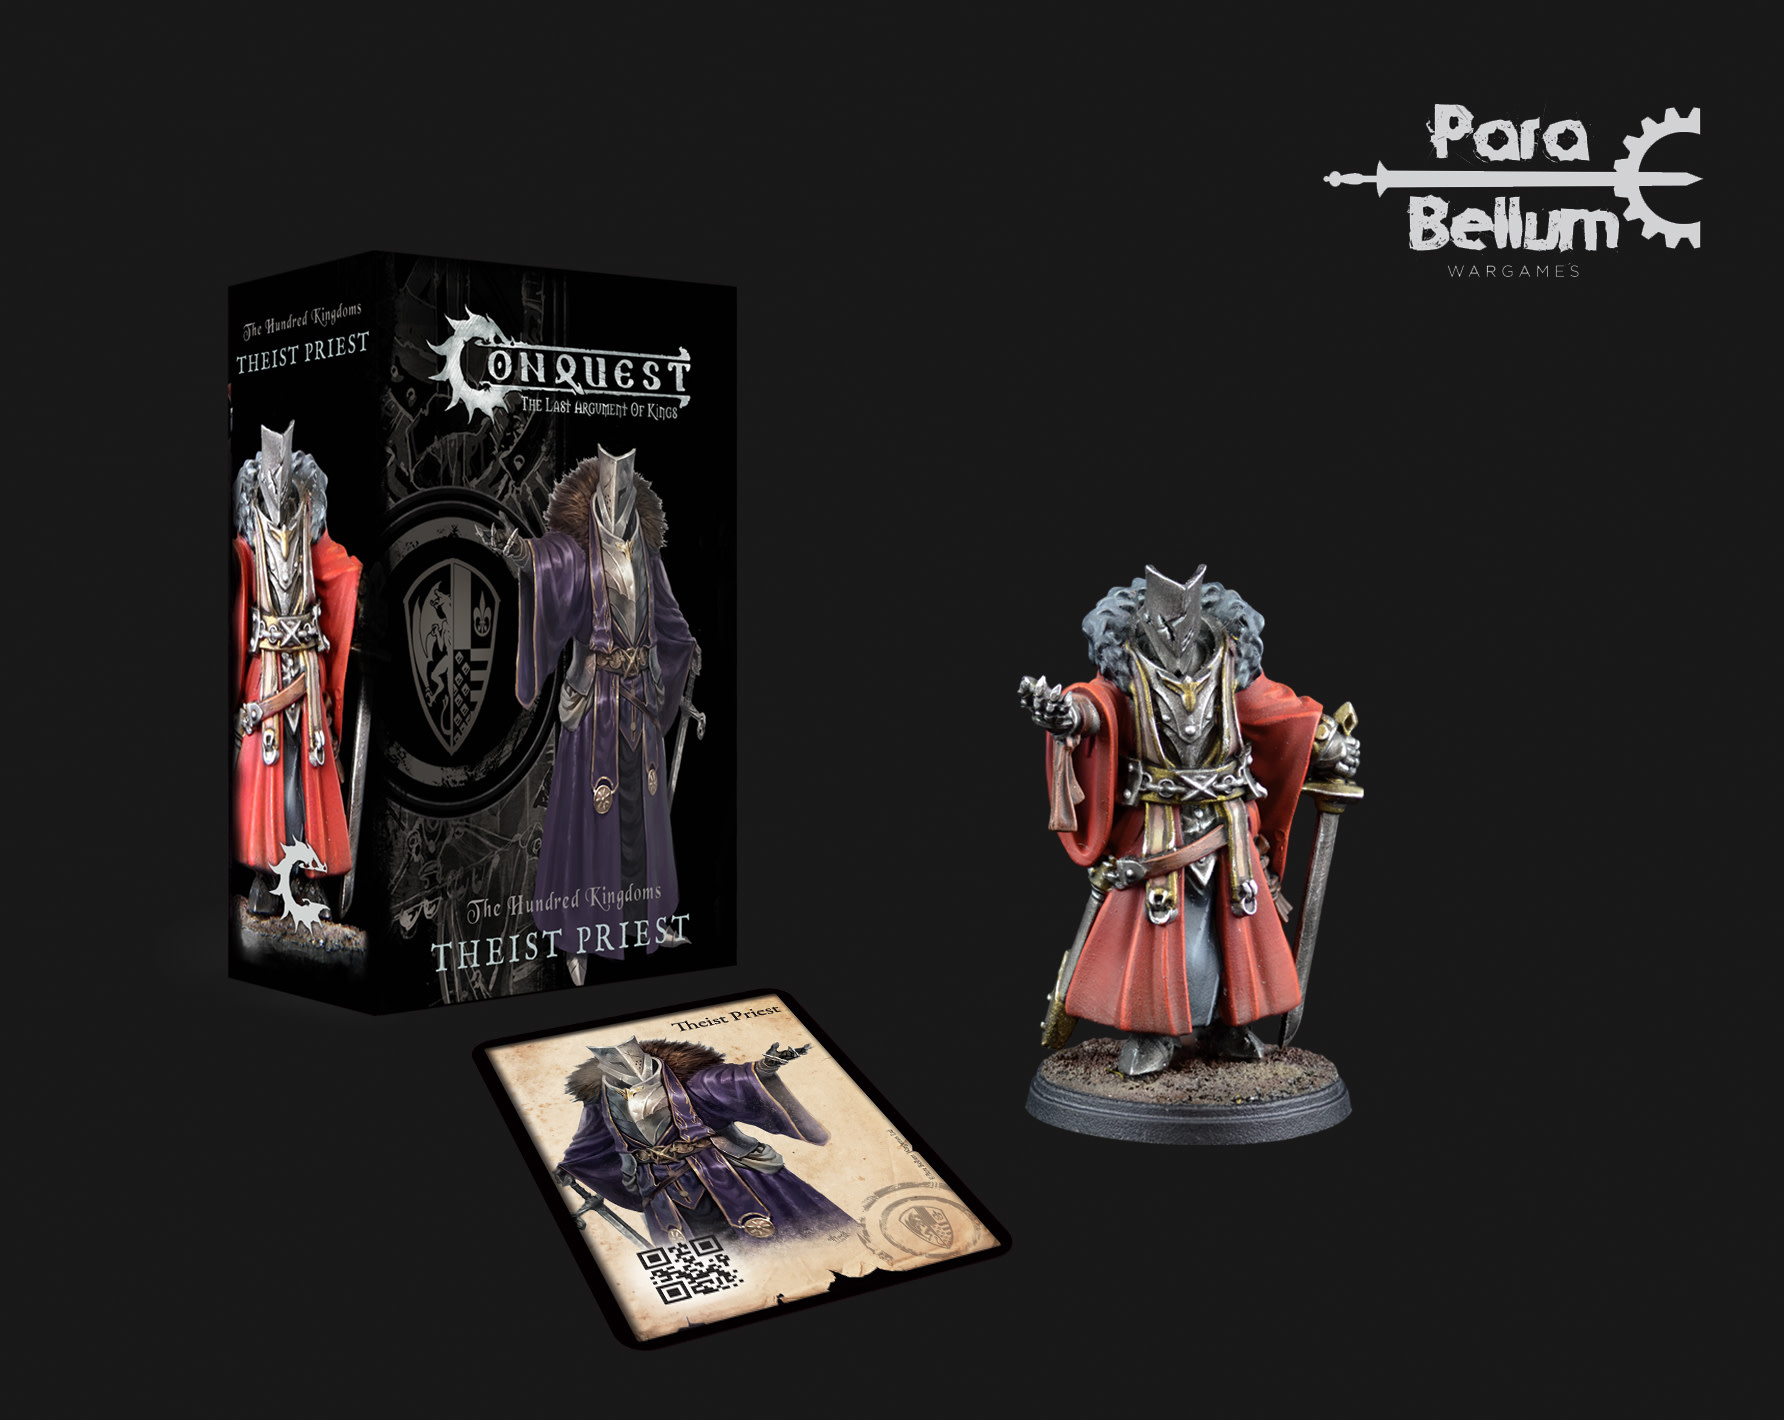 Para Bellum Hundred Kingdoms: Theist Priest